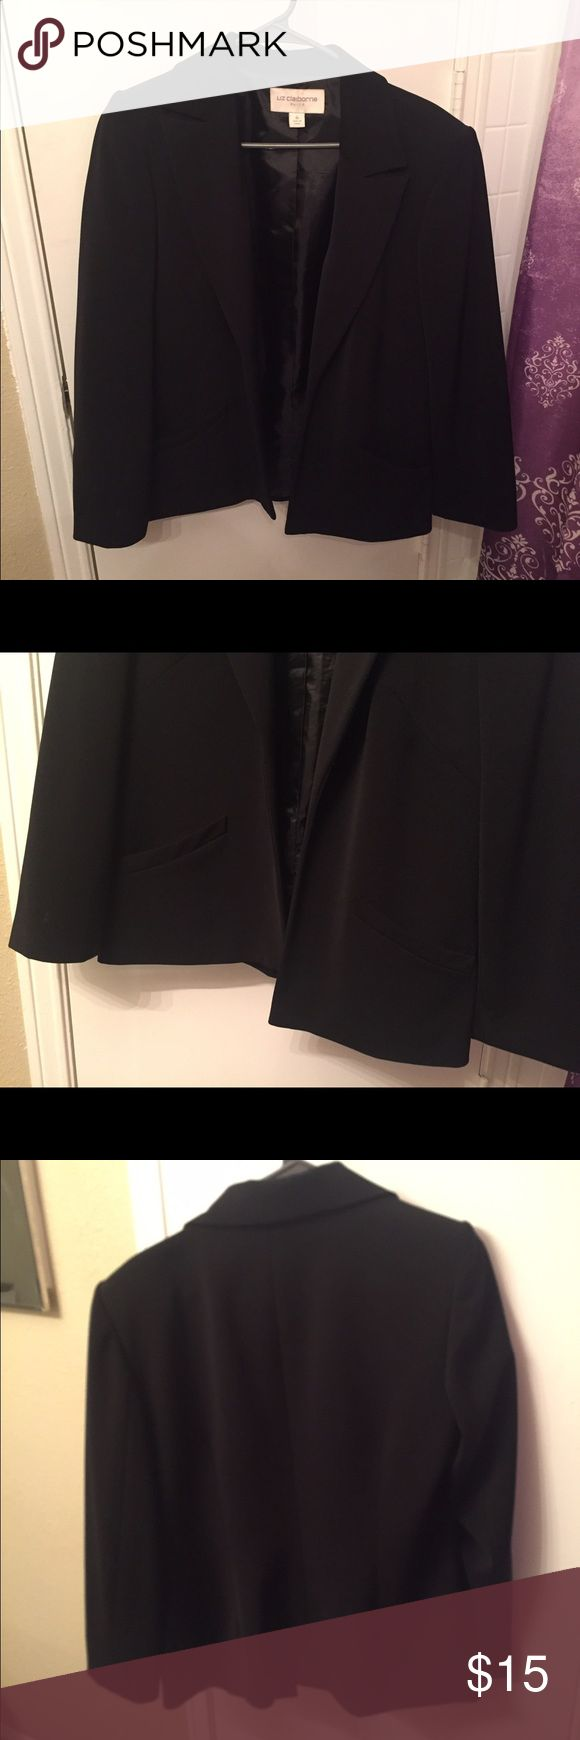 Liz Claiborne Black Suit Jacket Size 10 Liz Claiborne black suit jacket/blazer! Only worn by me 1-2 times. Liz Claiborne Jackets & Coats Blazers